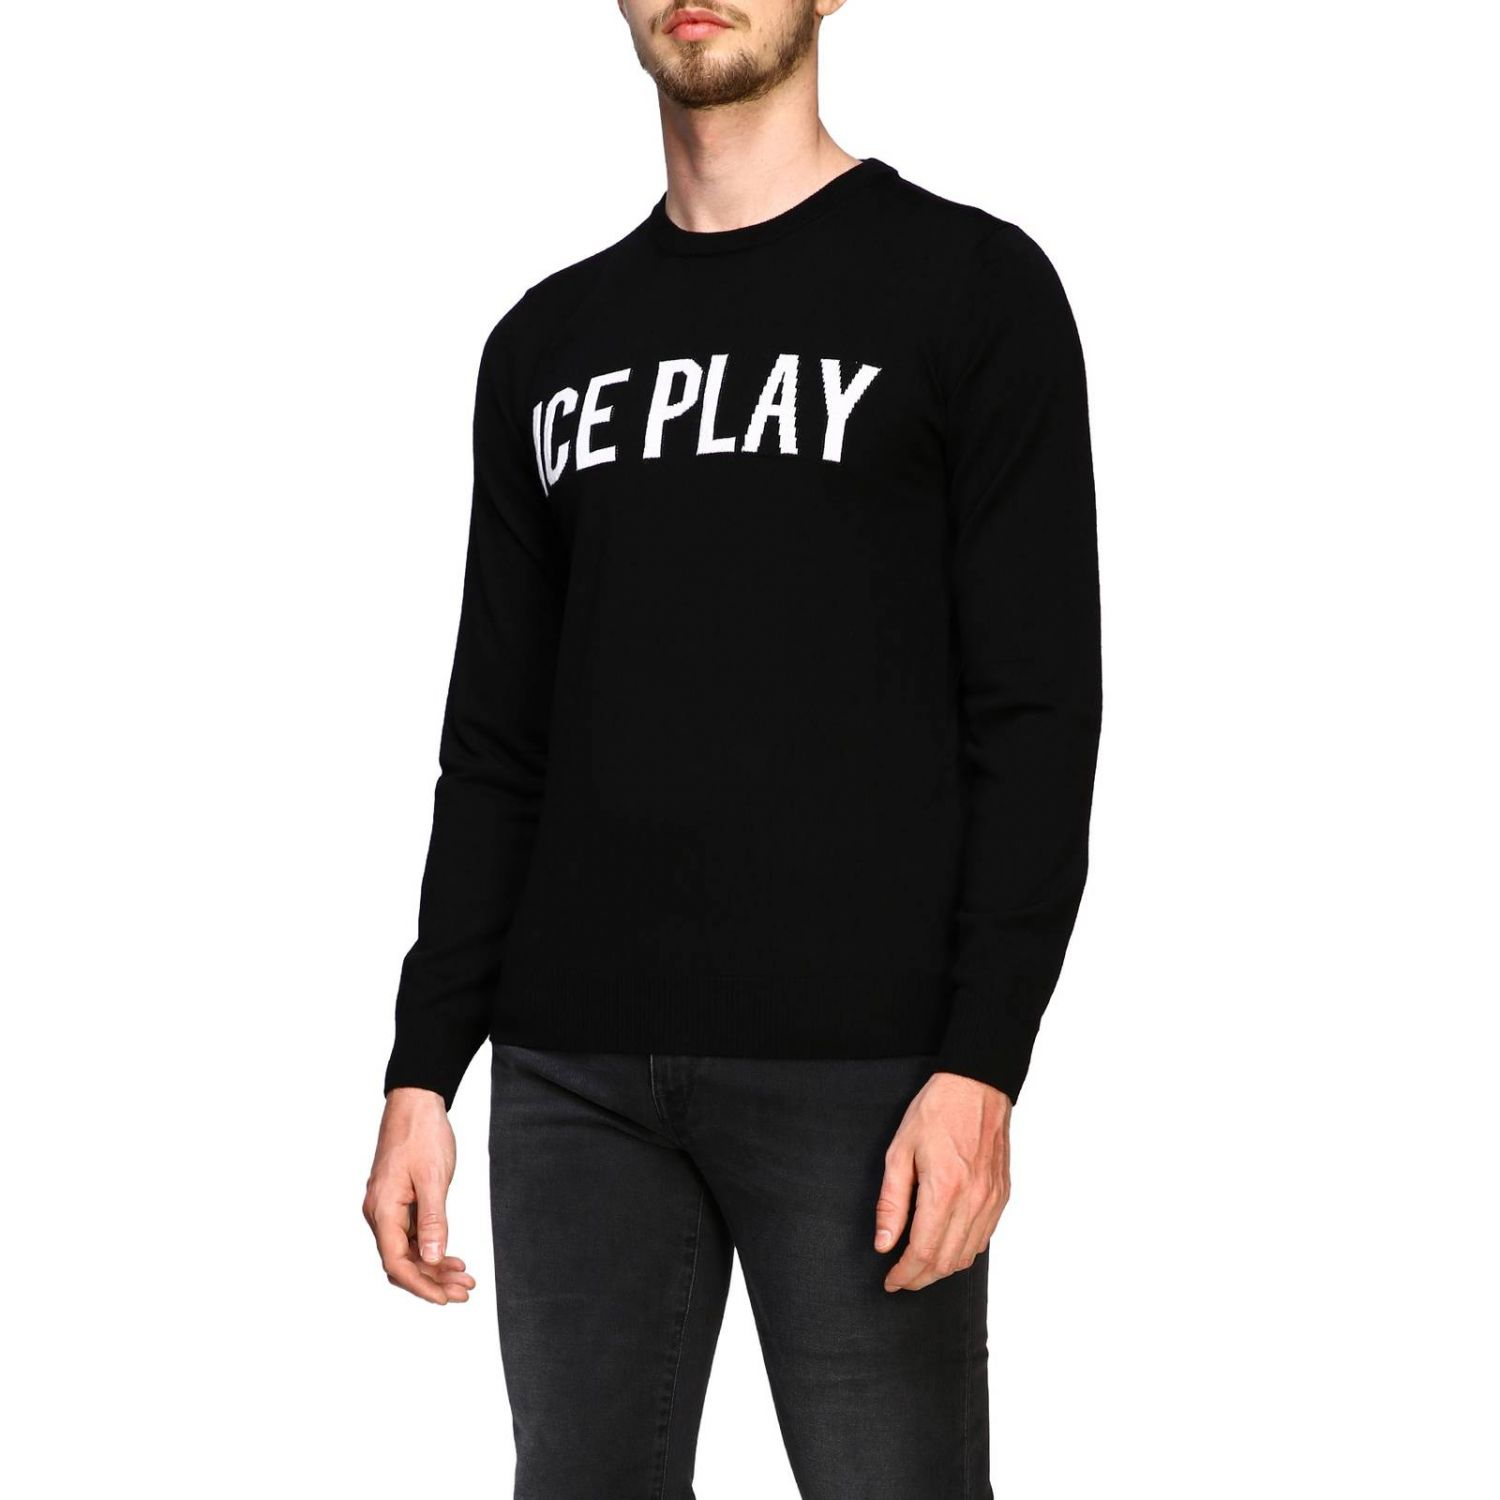 Jersey hombre Ice Play negro 4